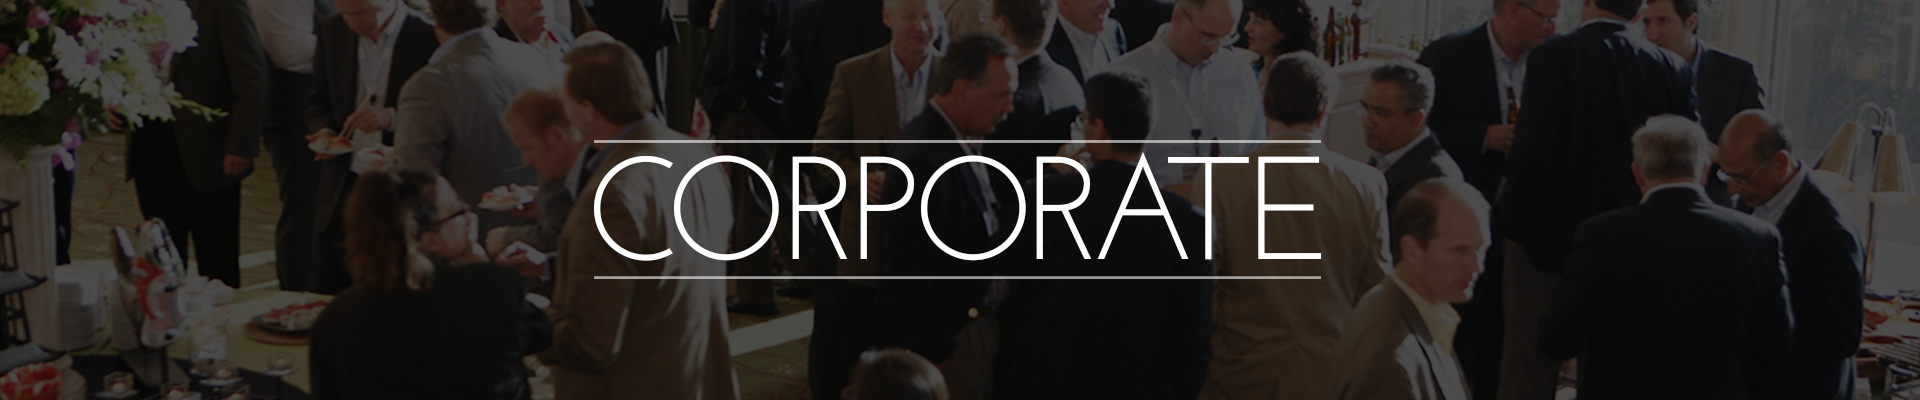 sycolor-corporate-event-banner